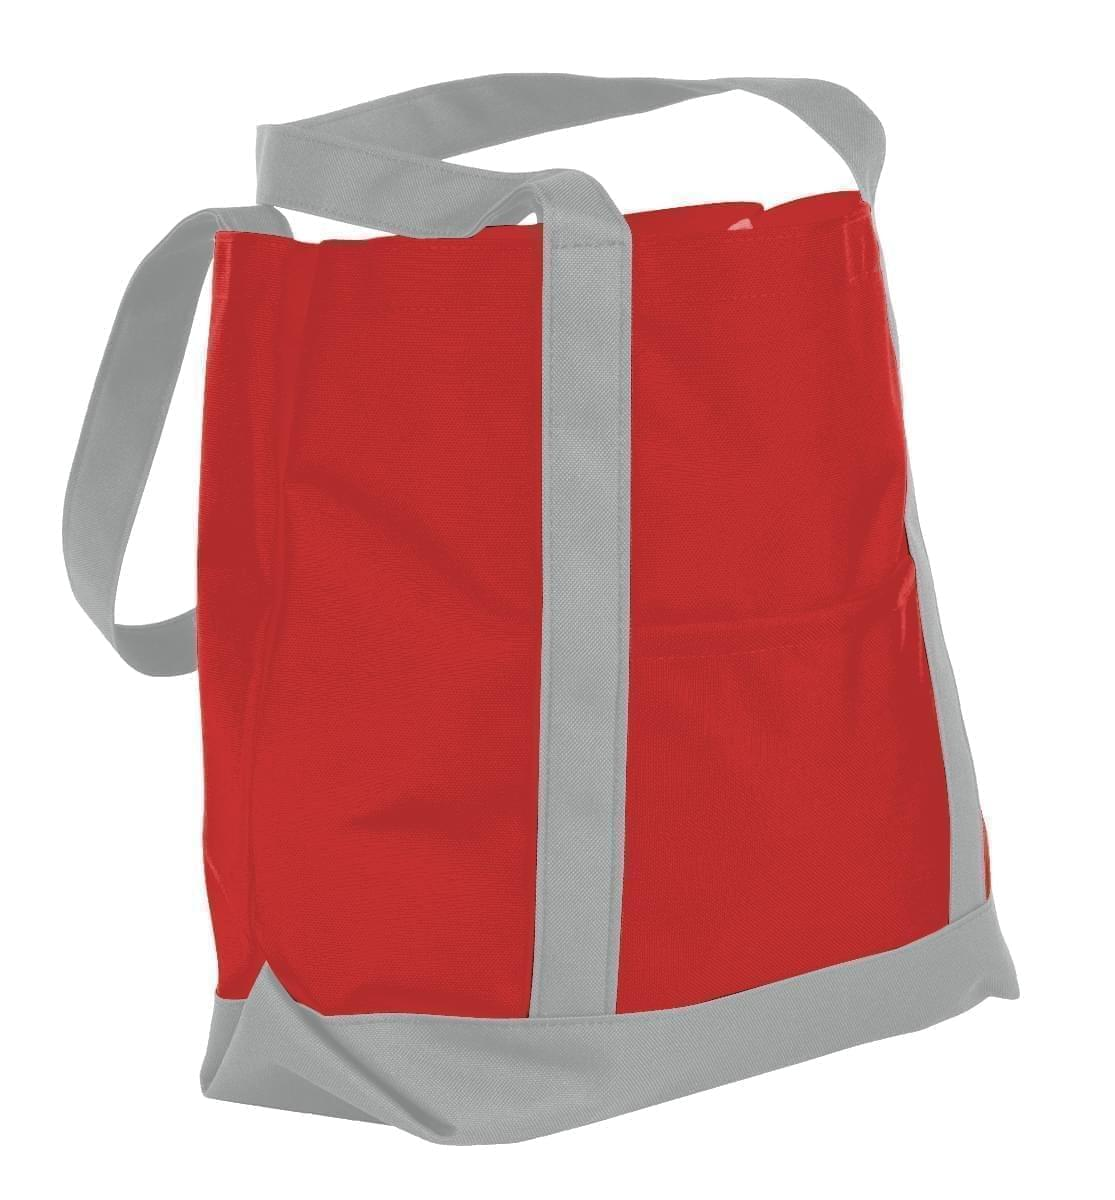 USA Made Canvas Fashion Tote Bags, Red-Grey, XAACL1UAEN